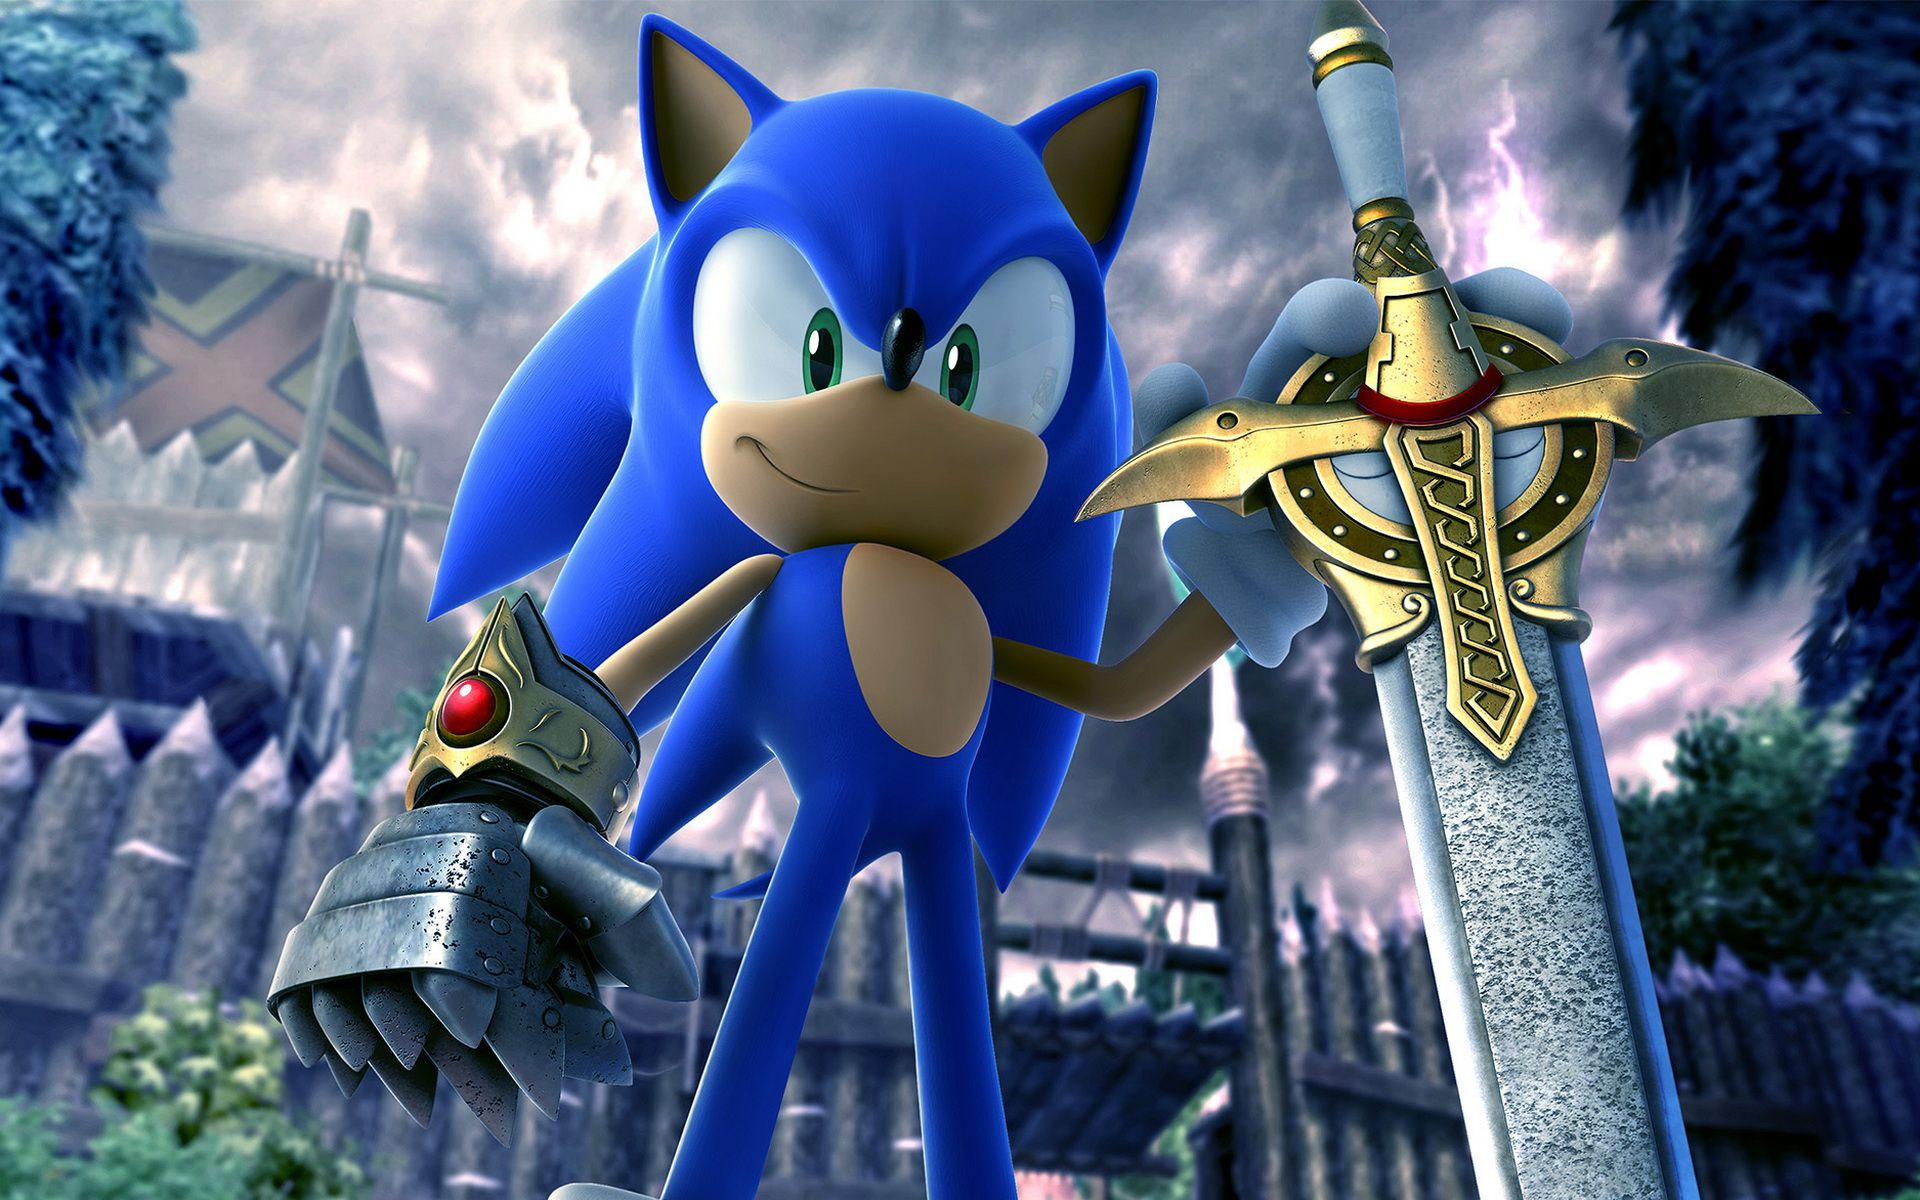 Sonic And The Black Knight Sonic Cartoon Wallpaper Sonic The Hedgehog